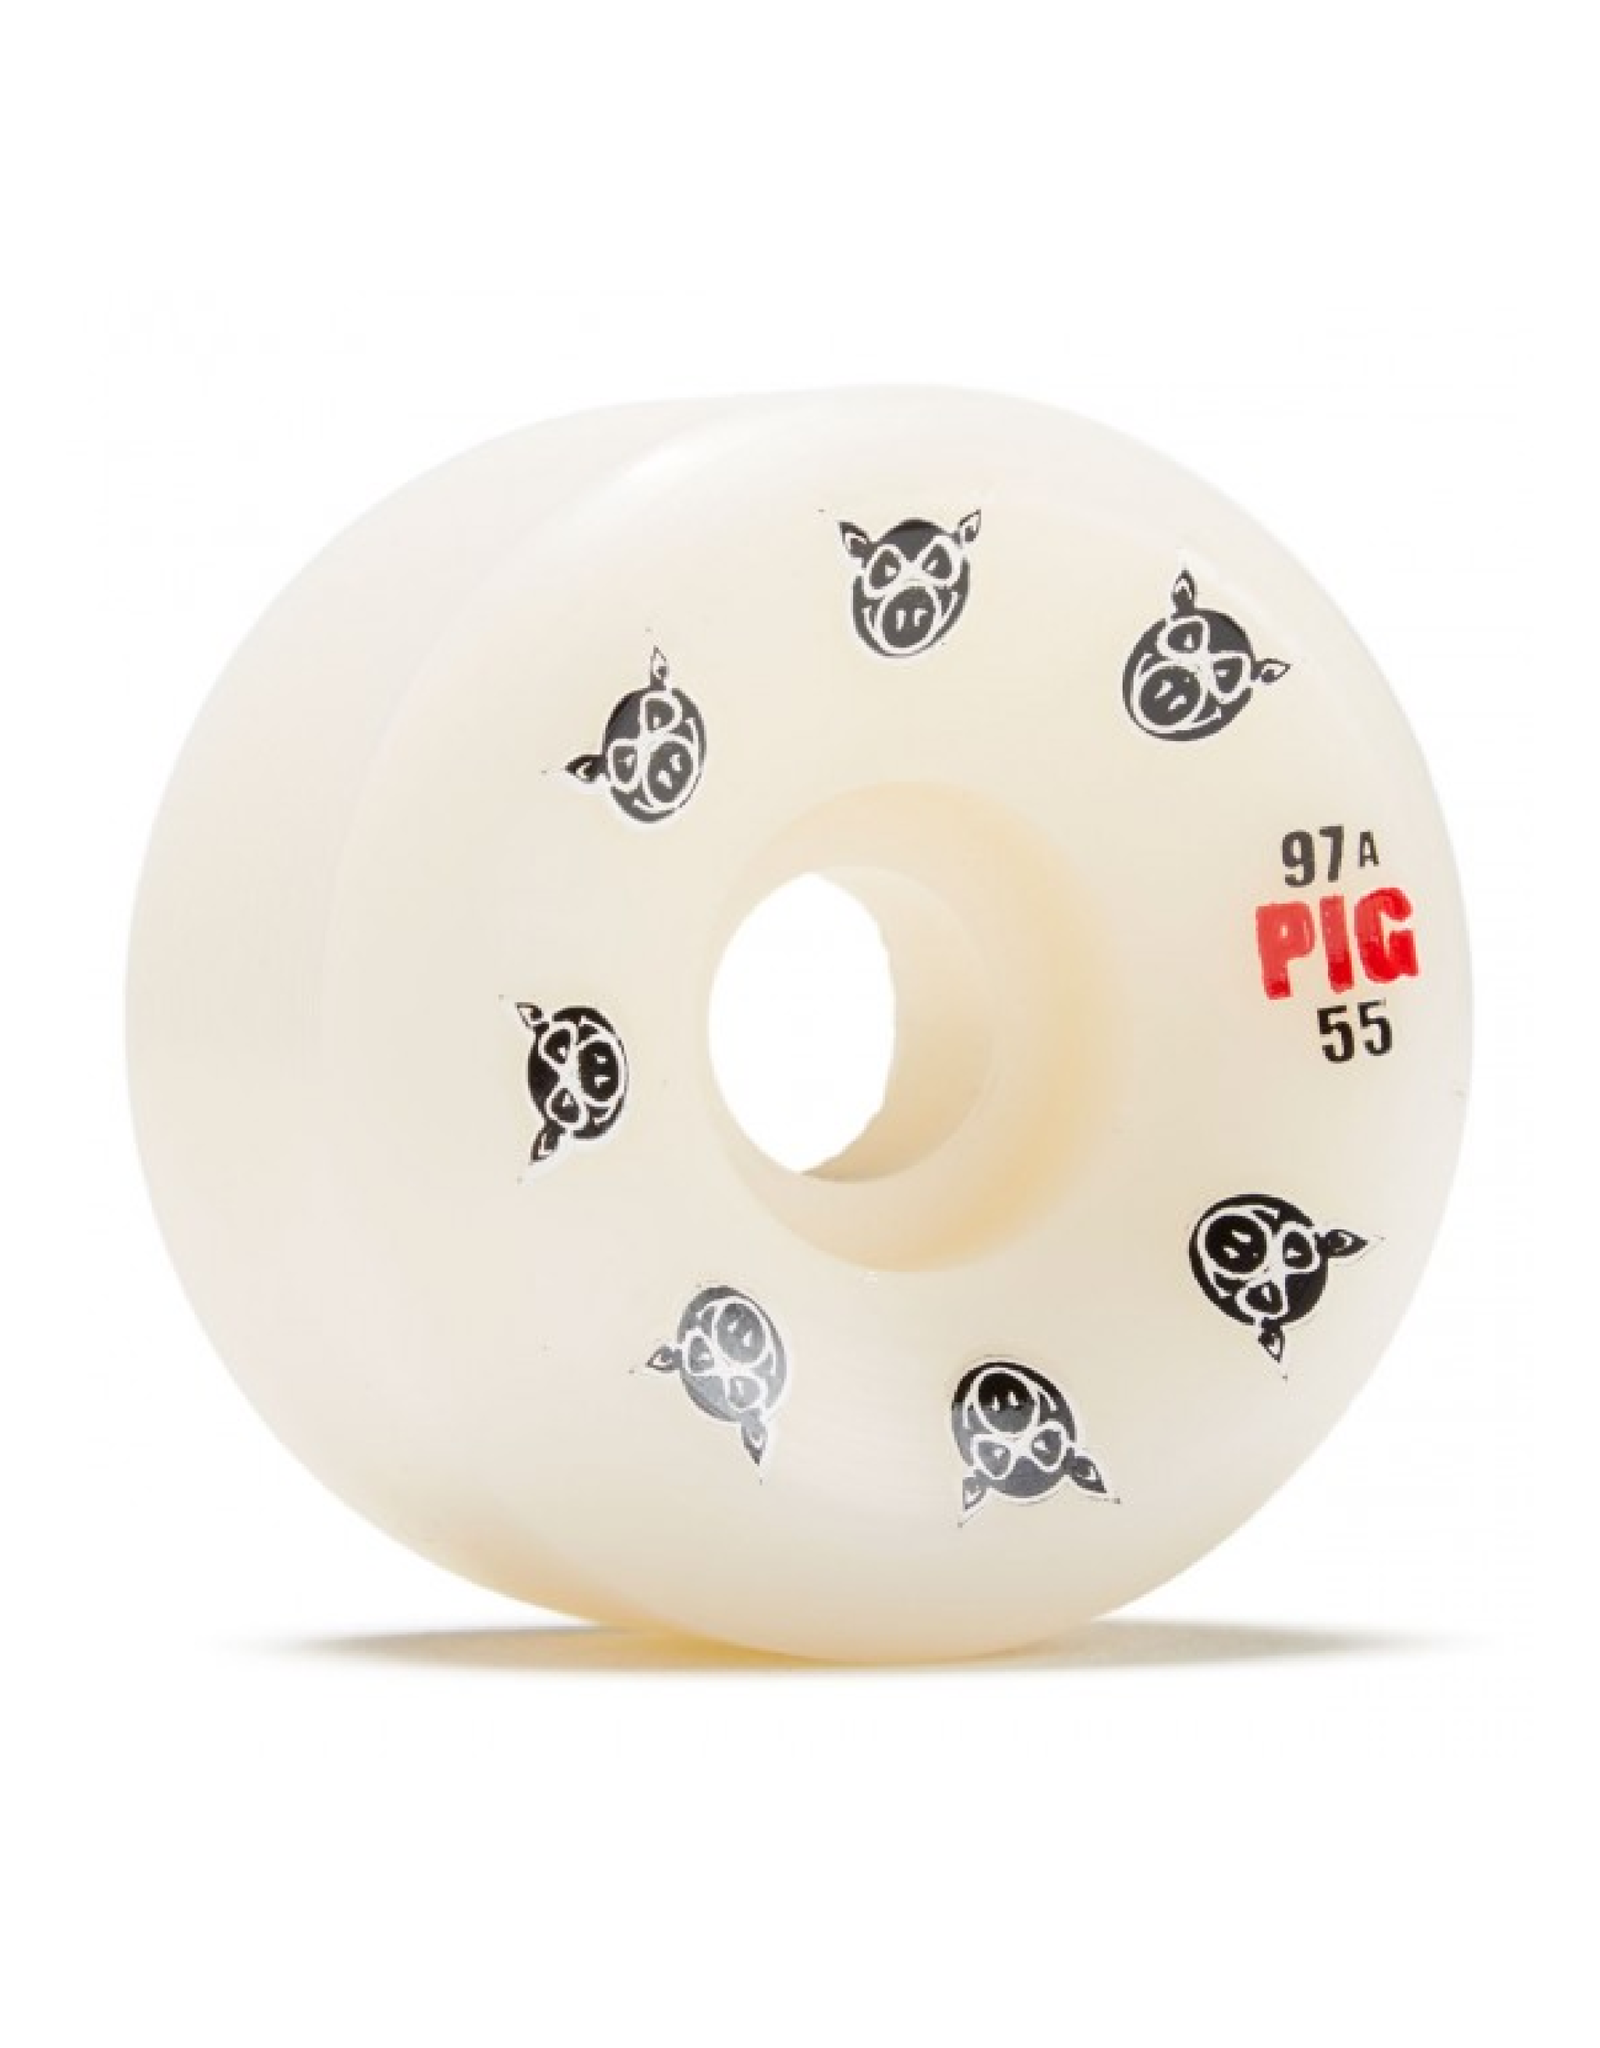 pig CONICAL MULTI PIG 55mm 97a WHITE